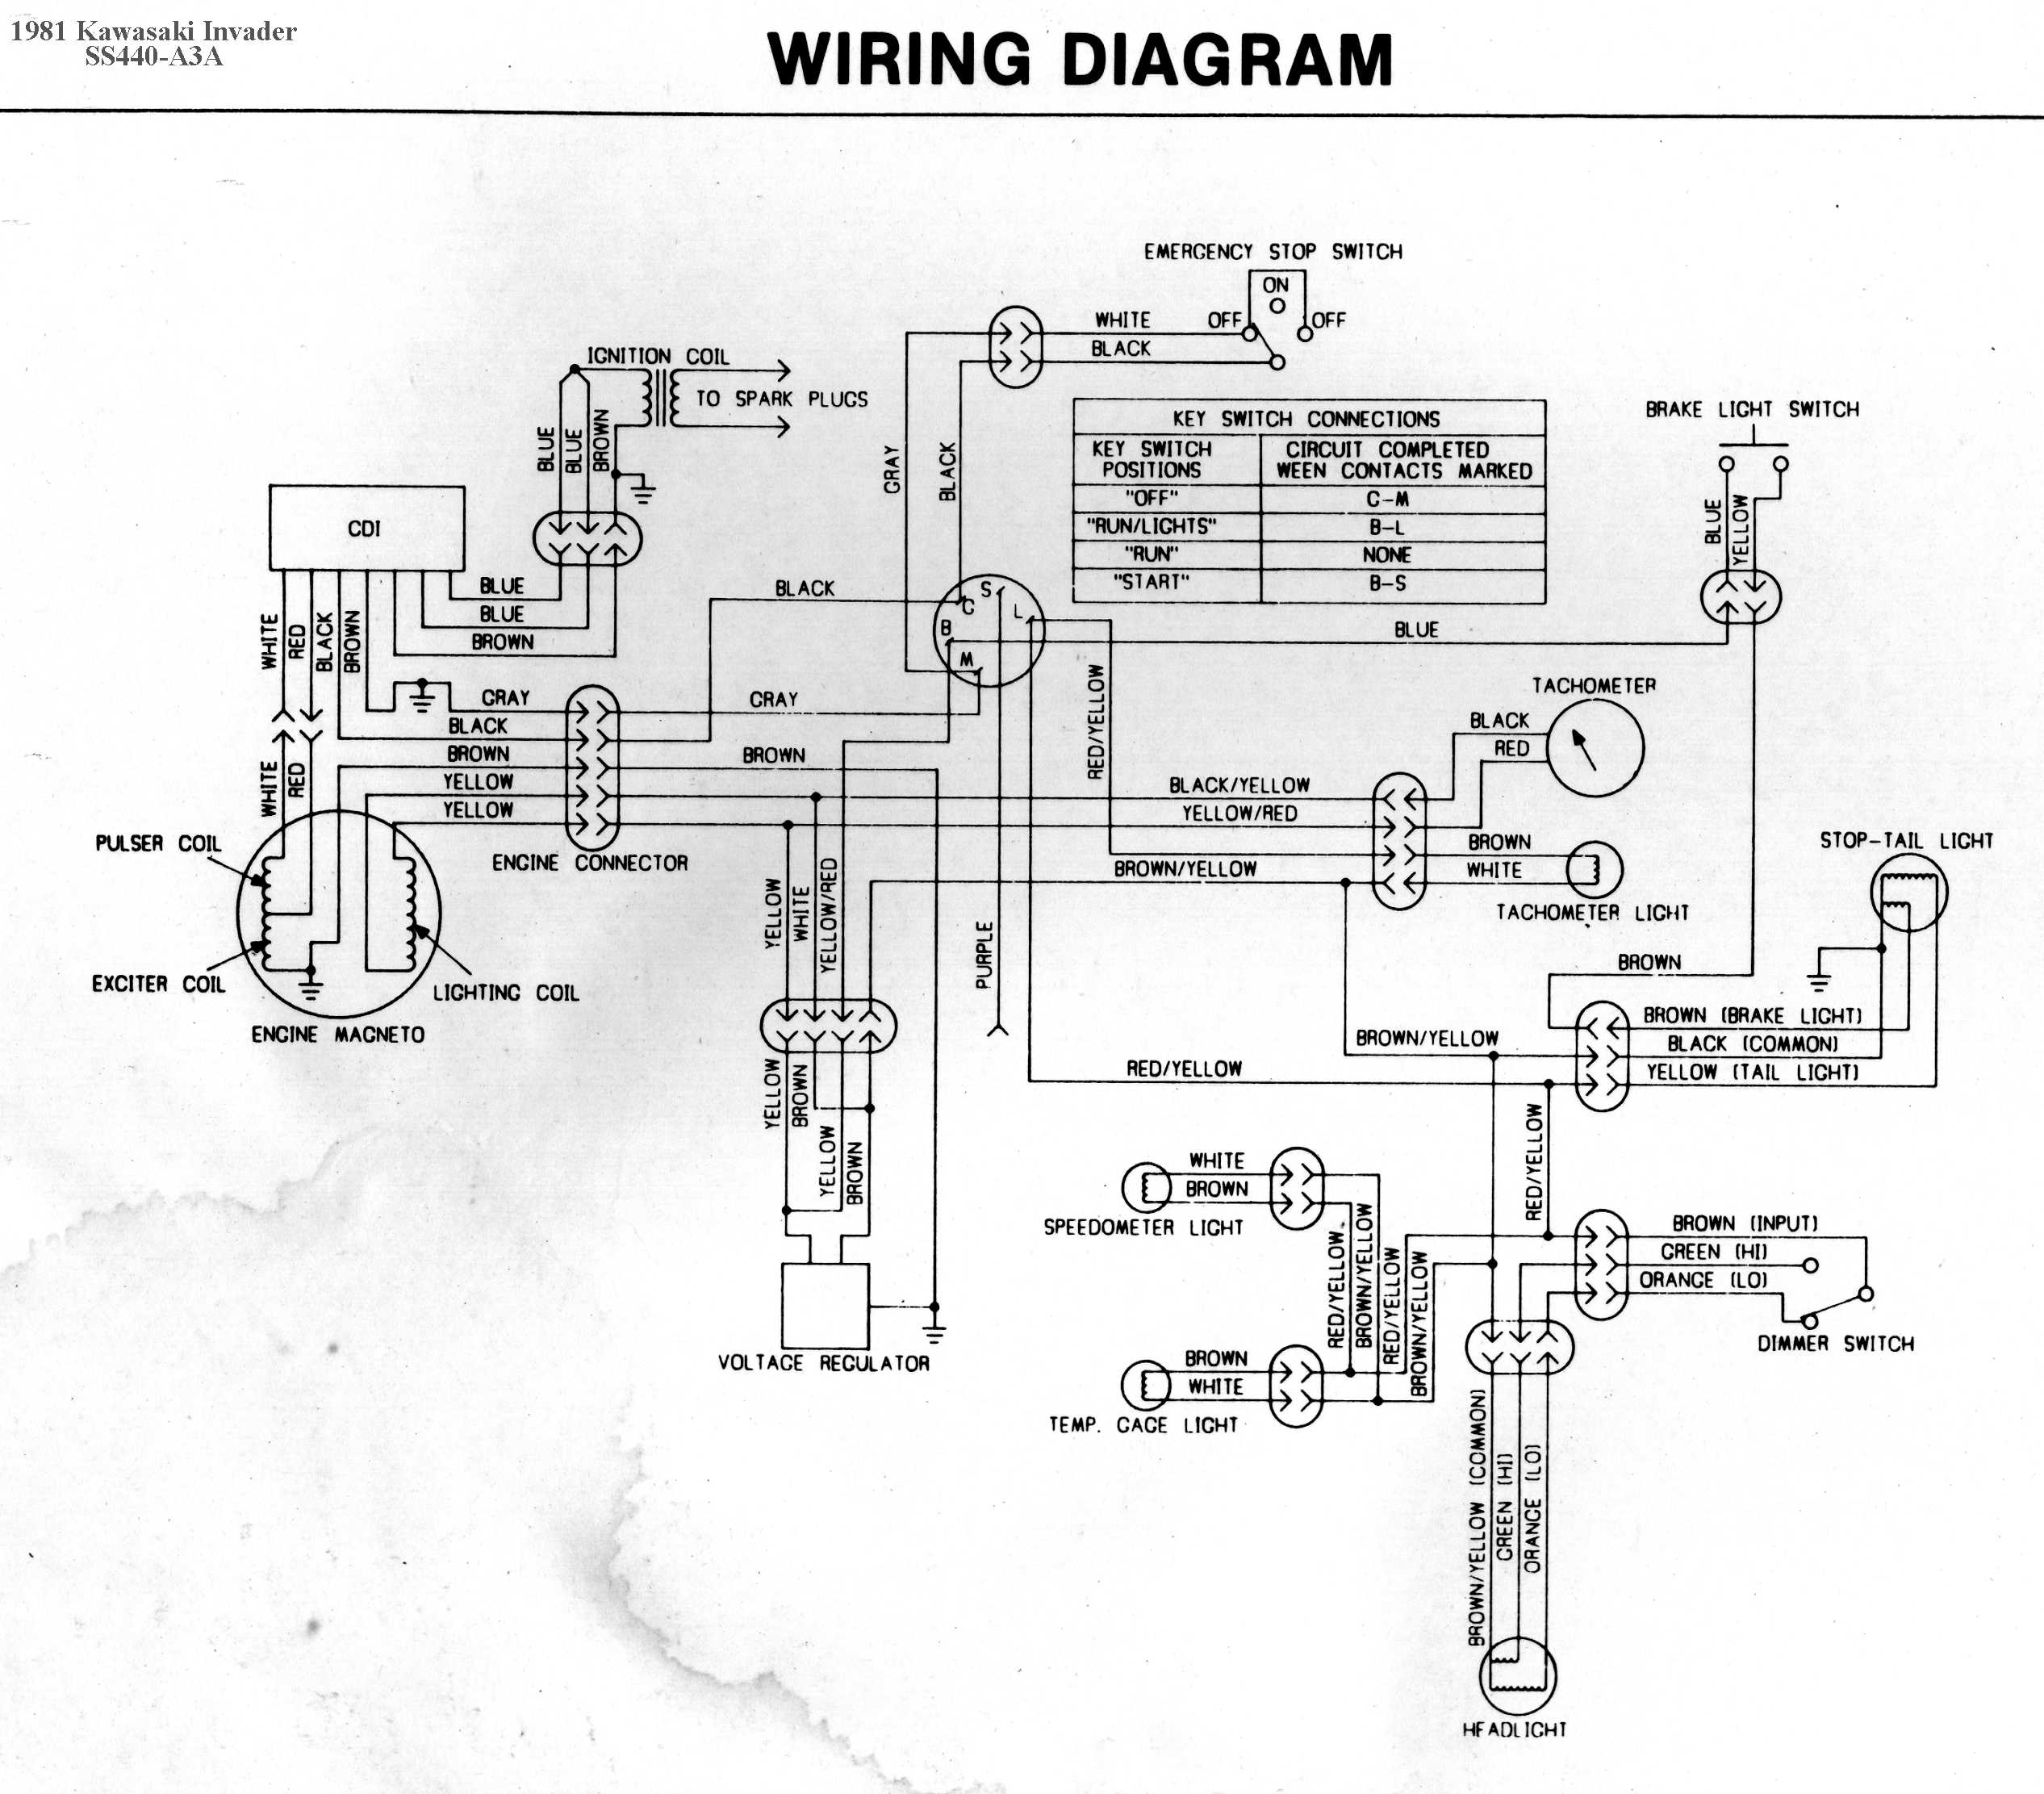 Jet Ski Wiring Diagram | Wiring Diagram Kawaski Jet Ski Wiring Schematic on